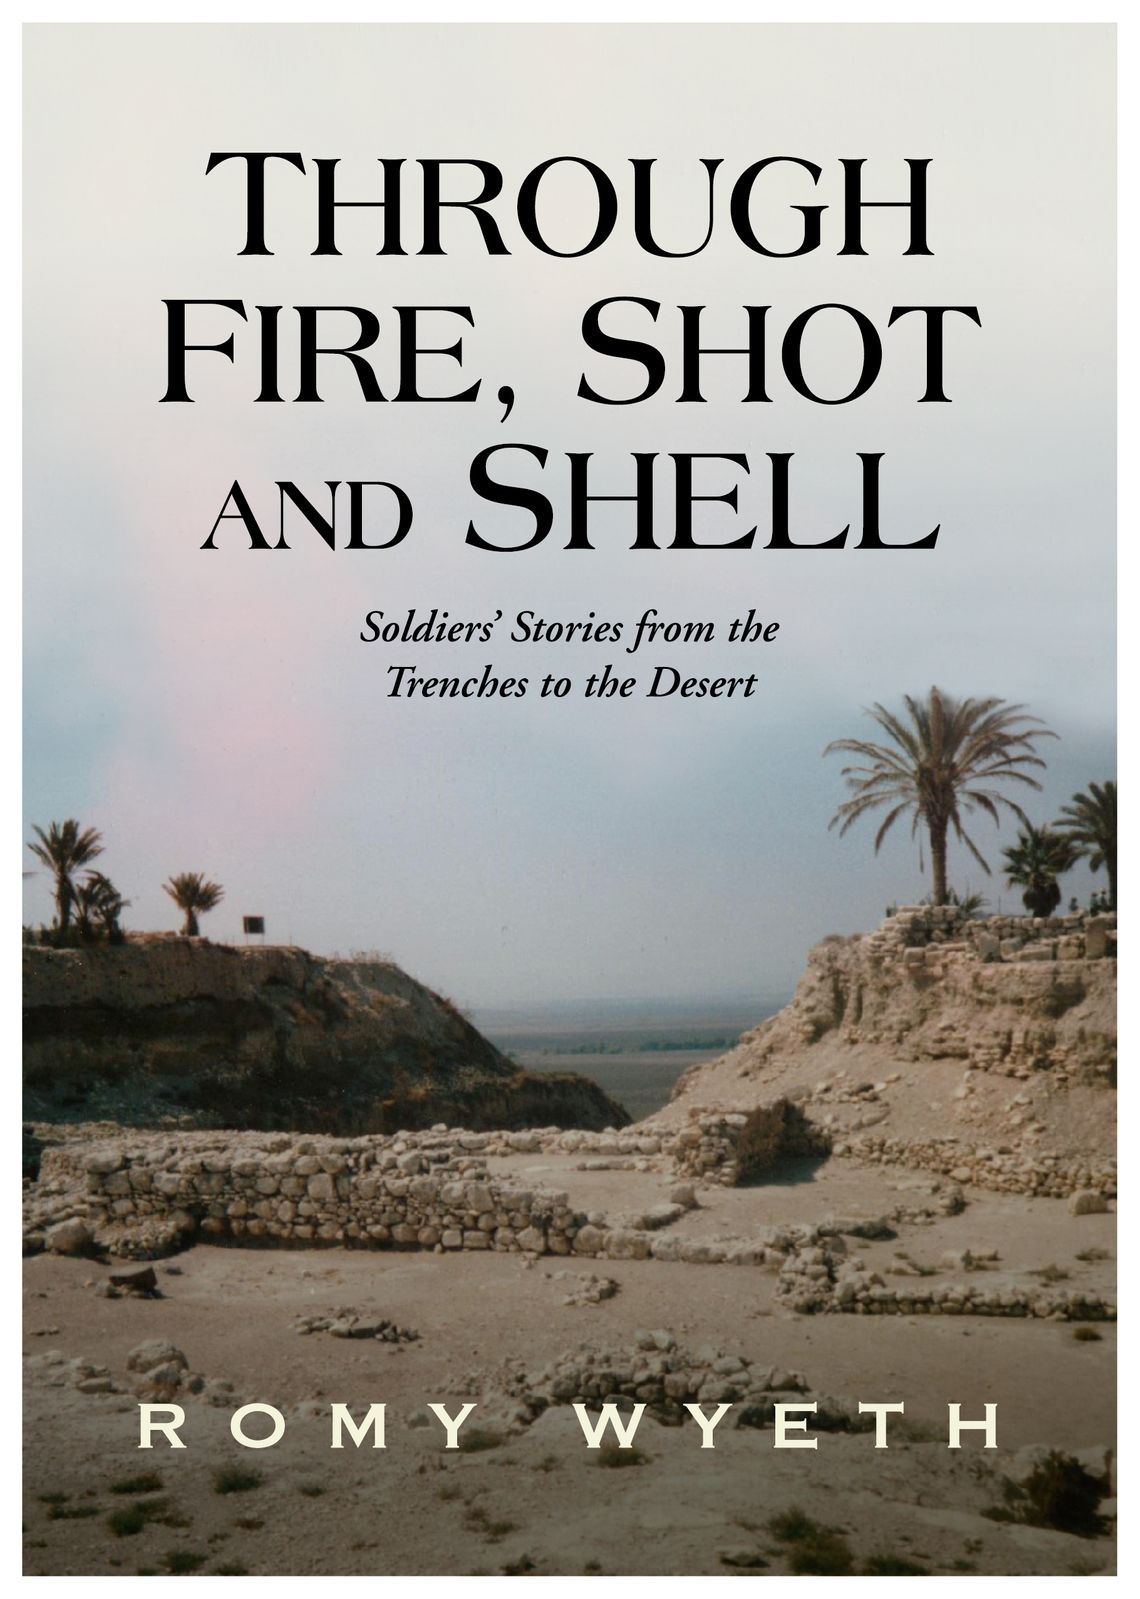 Through Fire, Shot and Shell